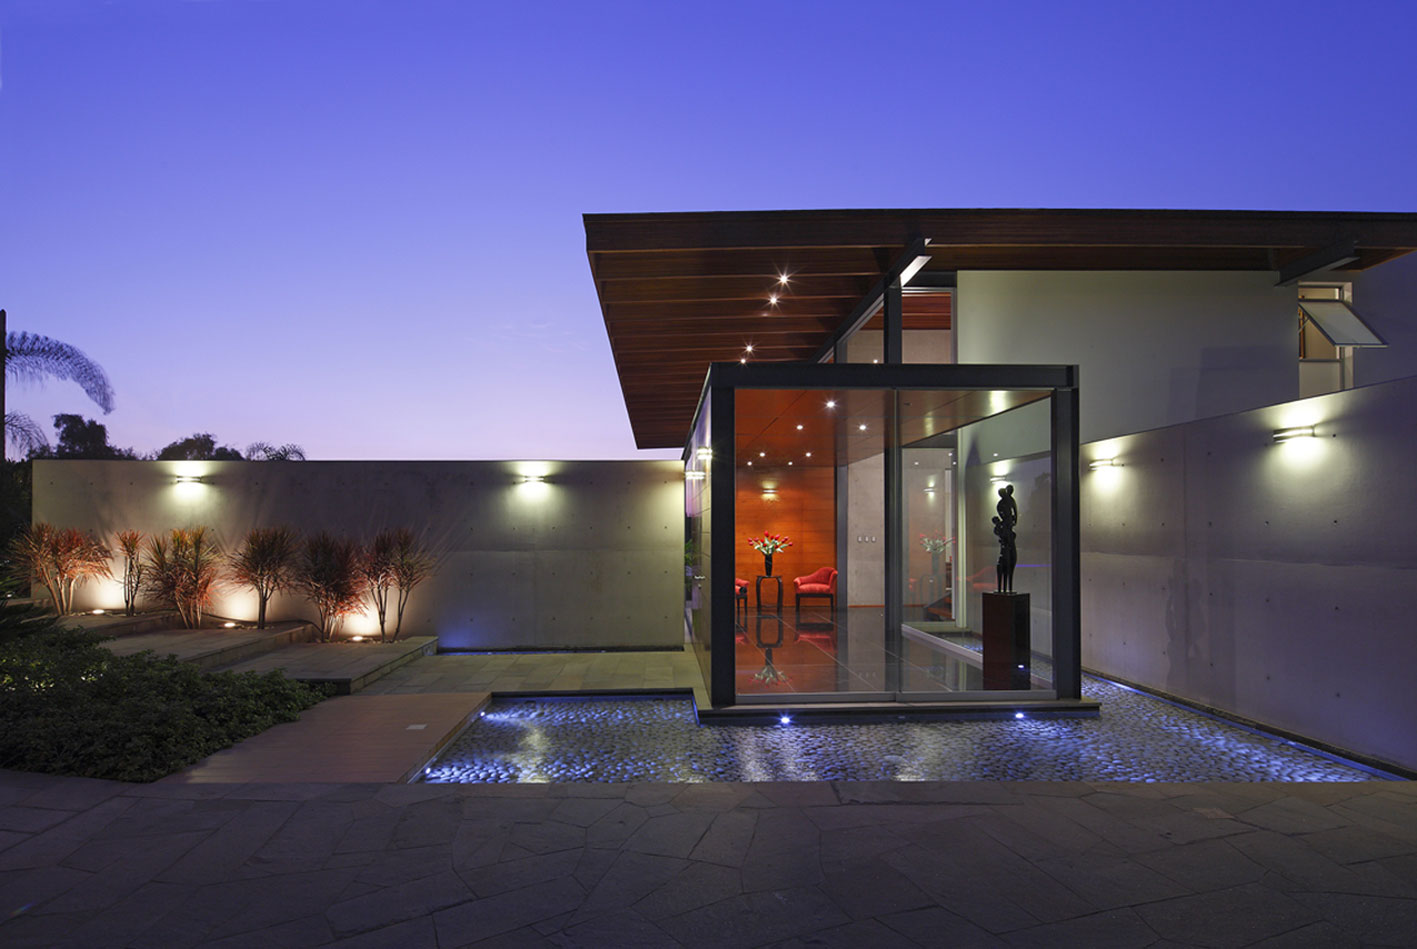 Outdoor Water Feature, Lighting, Glass Entrance, Imposing Family Home in Lima, Peru